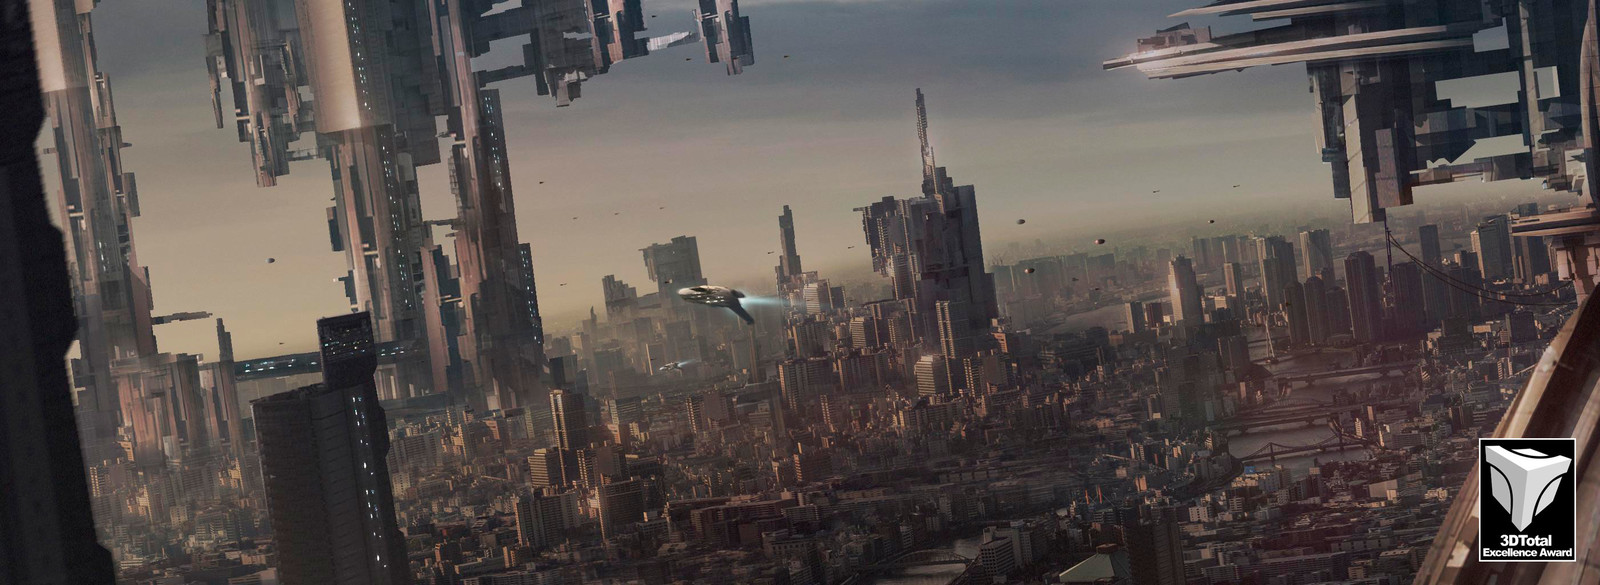 Matte Painting Practice.